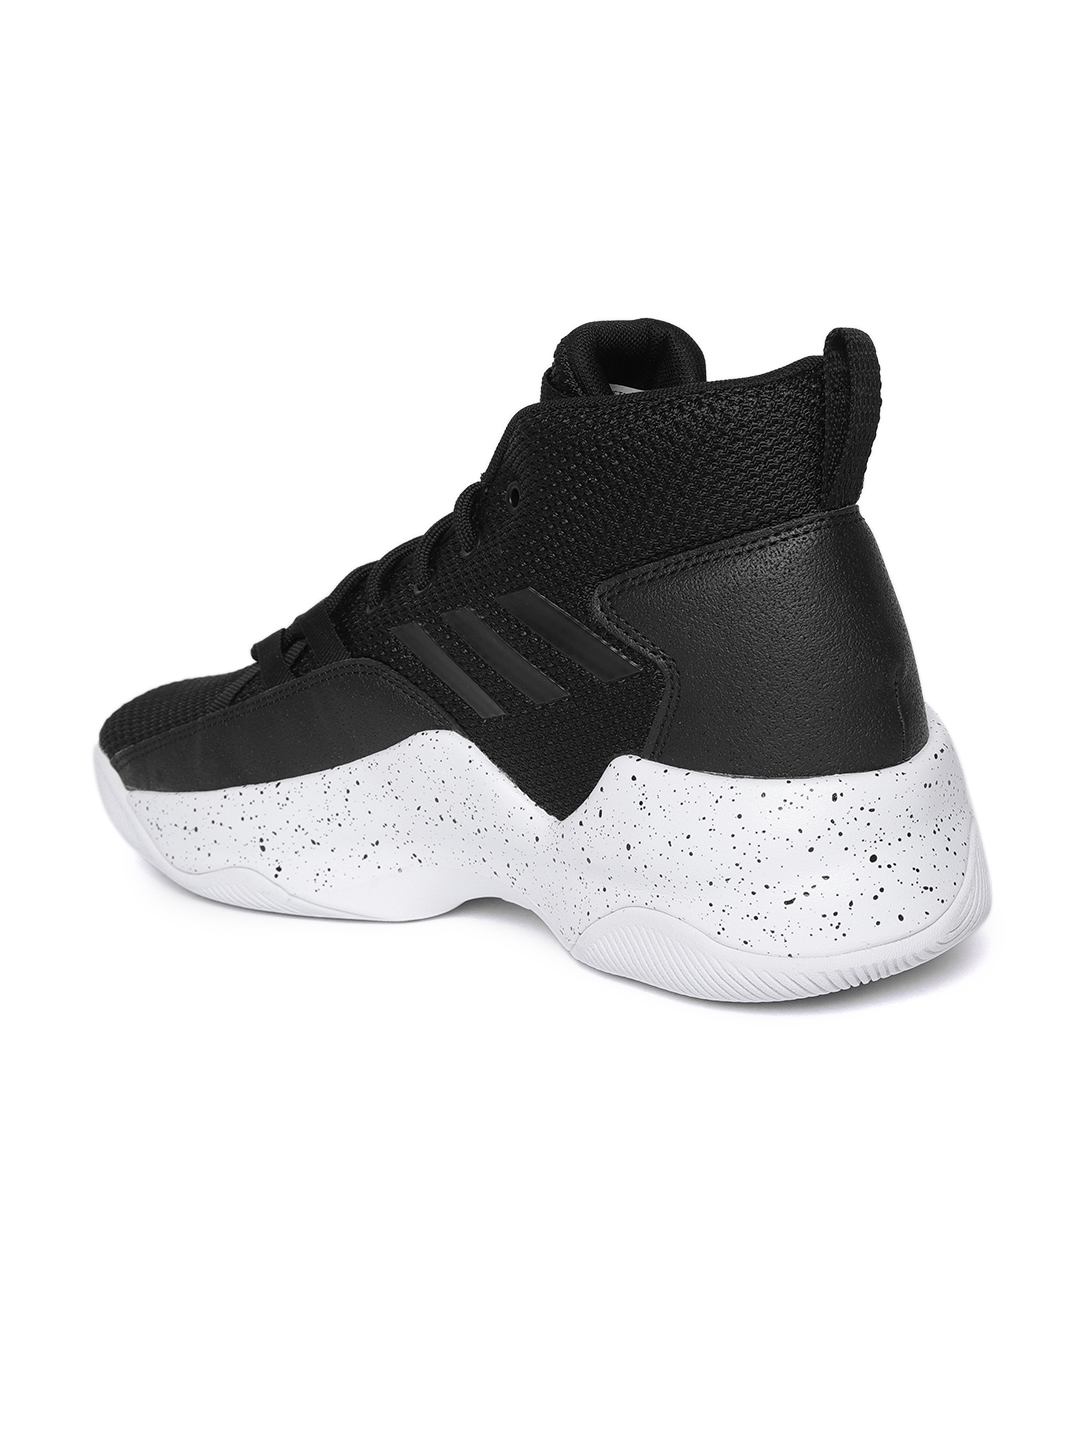 2c24aa3a7fb5 Buy ADIDAS Men Black Streetfire Basketball Shoes - Sports Shoes for ...